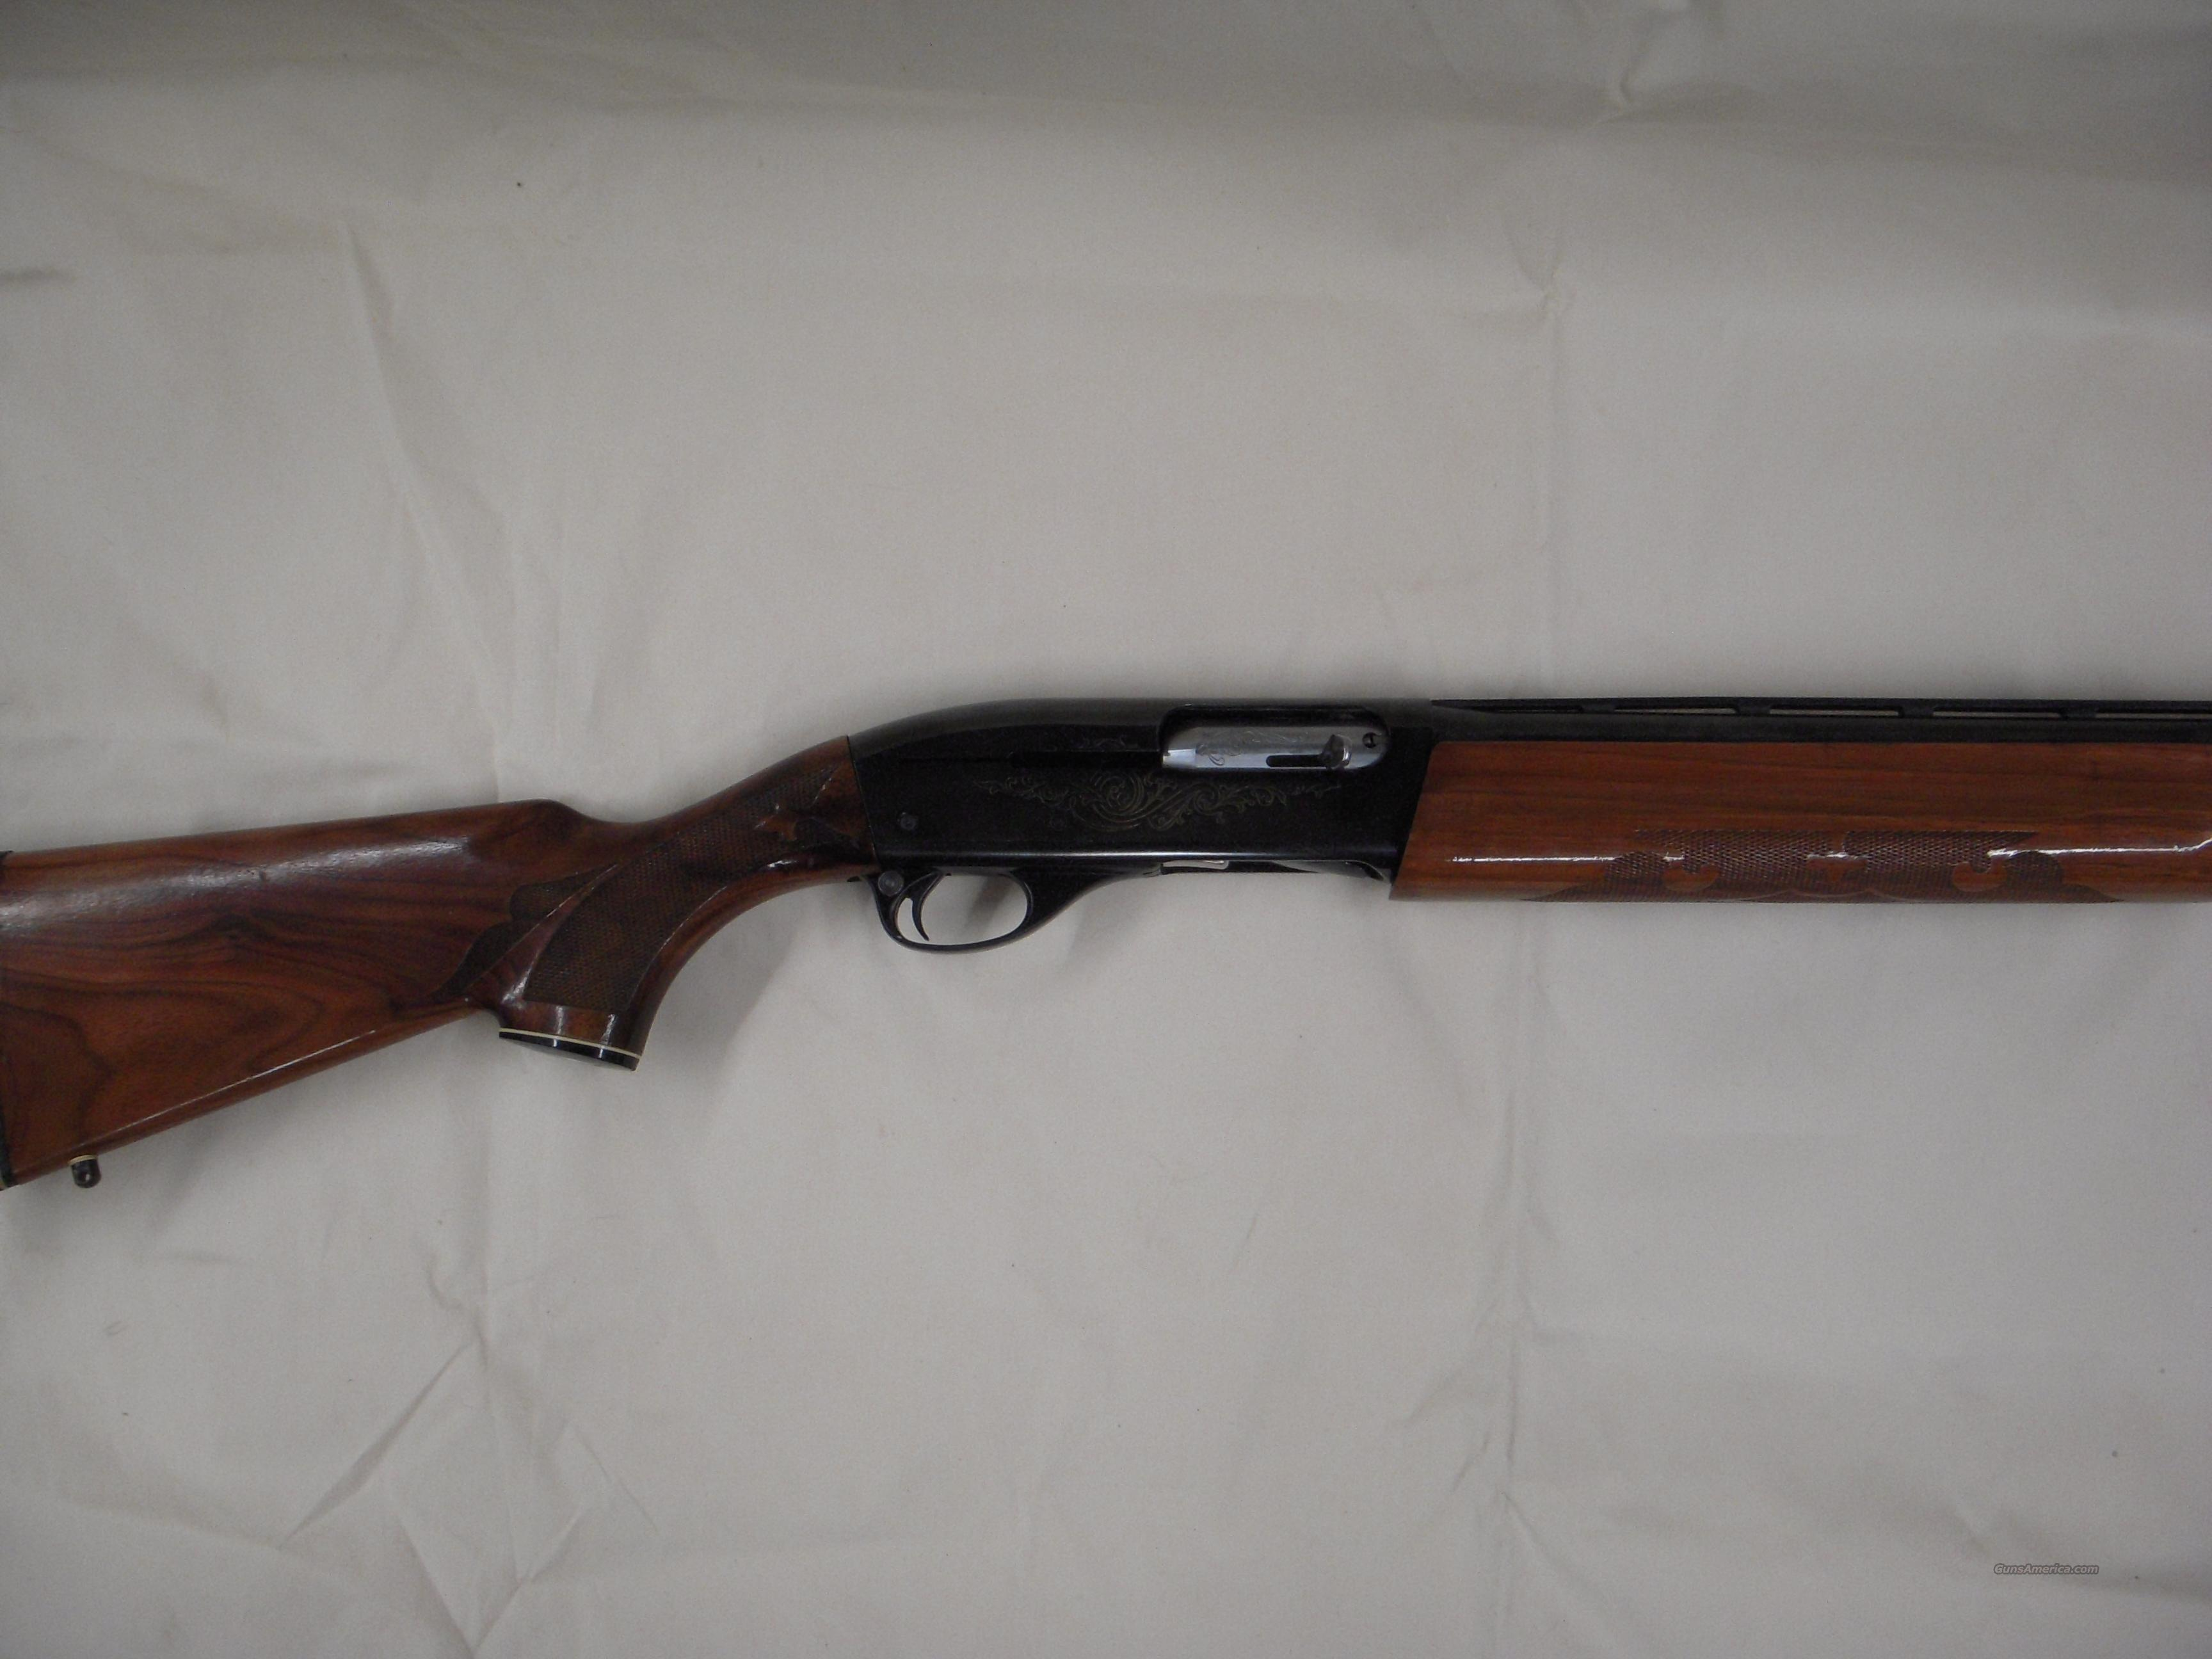 REMINGTON 1100 12 GA. 1970'S  Guns > Shotguns > Remington Shotguns  > Autoloaders > Hunting